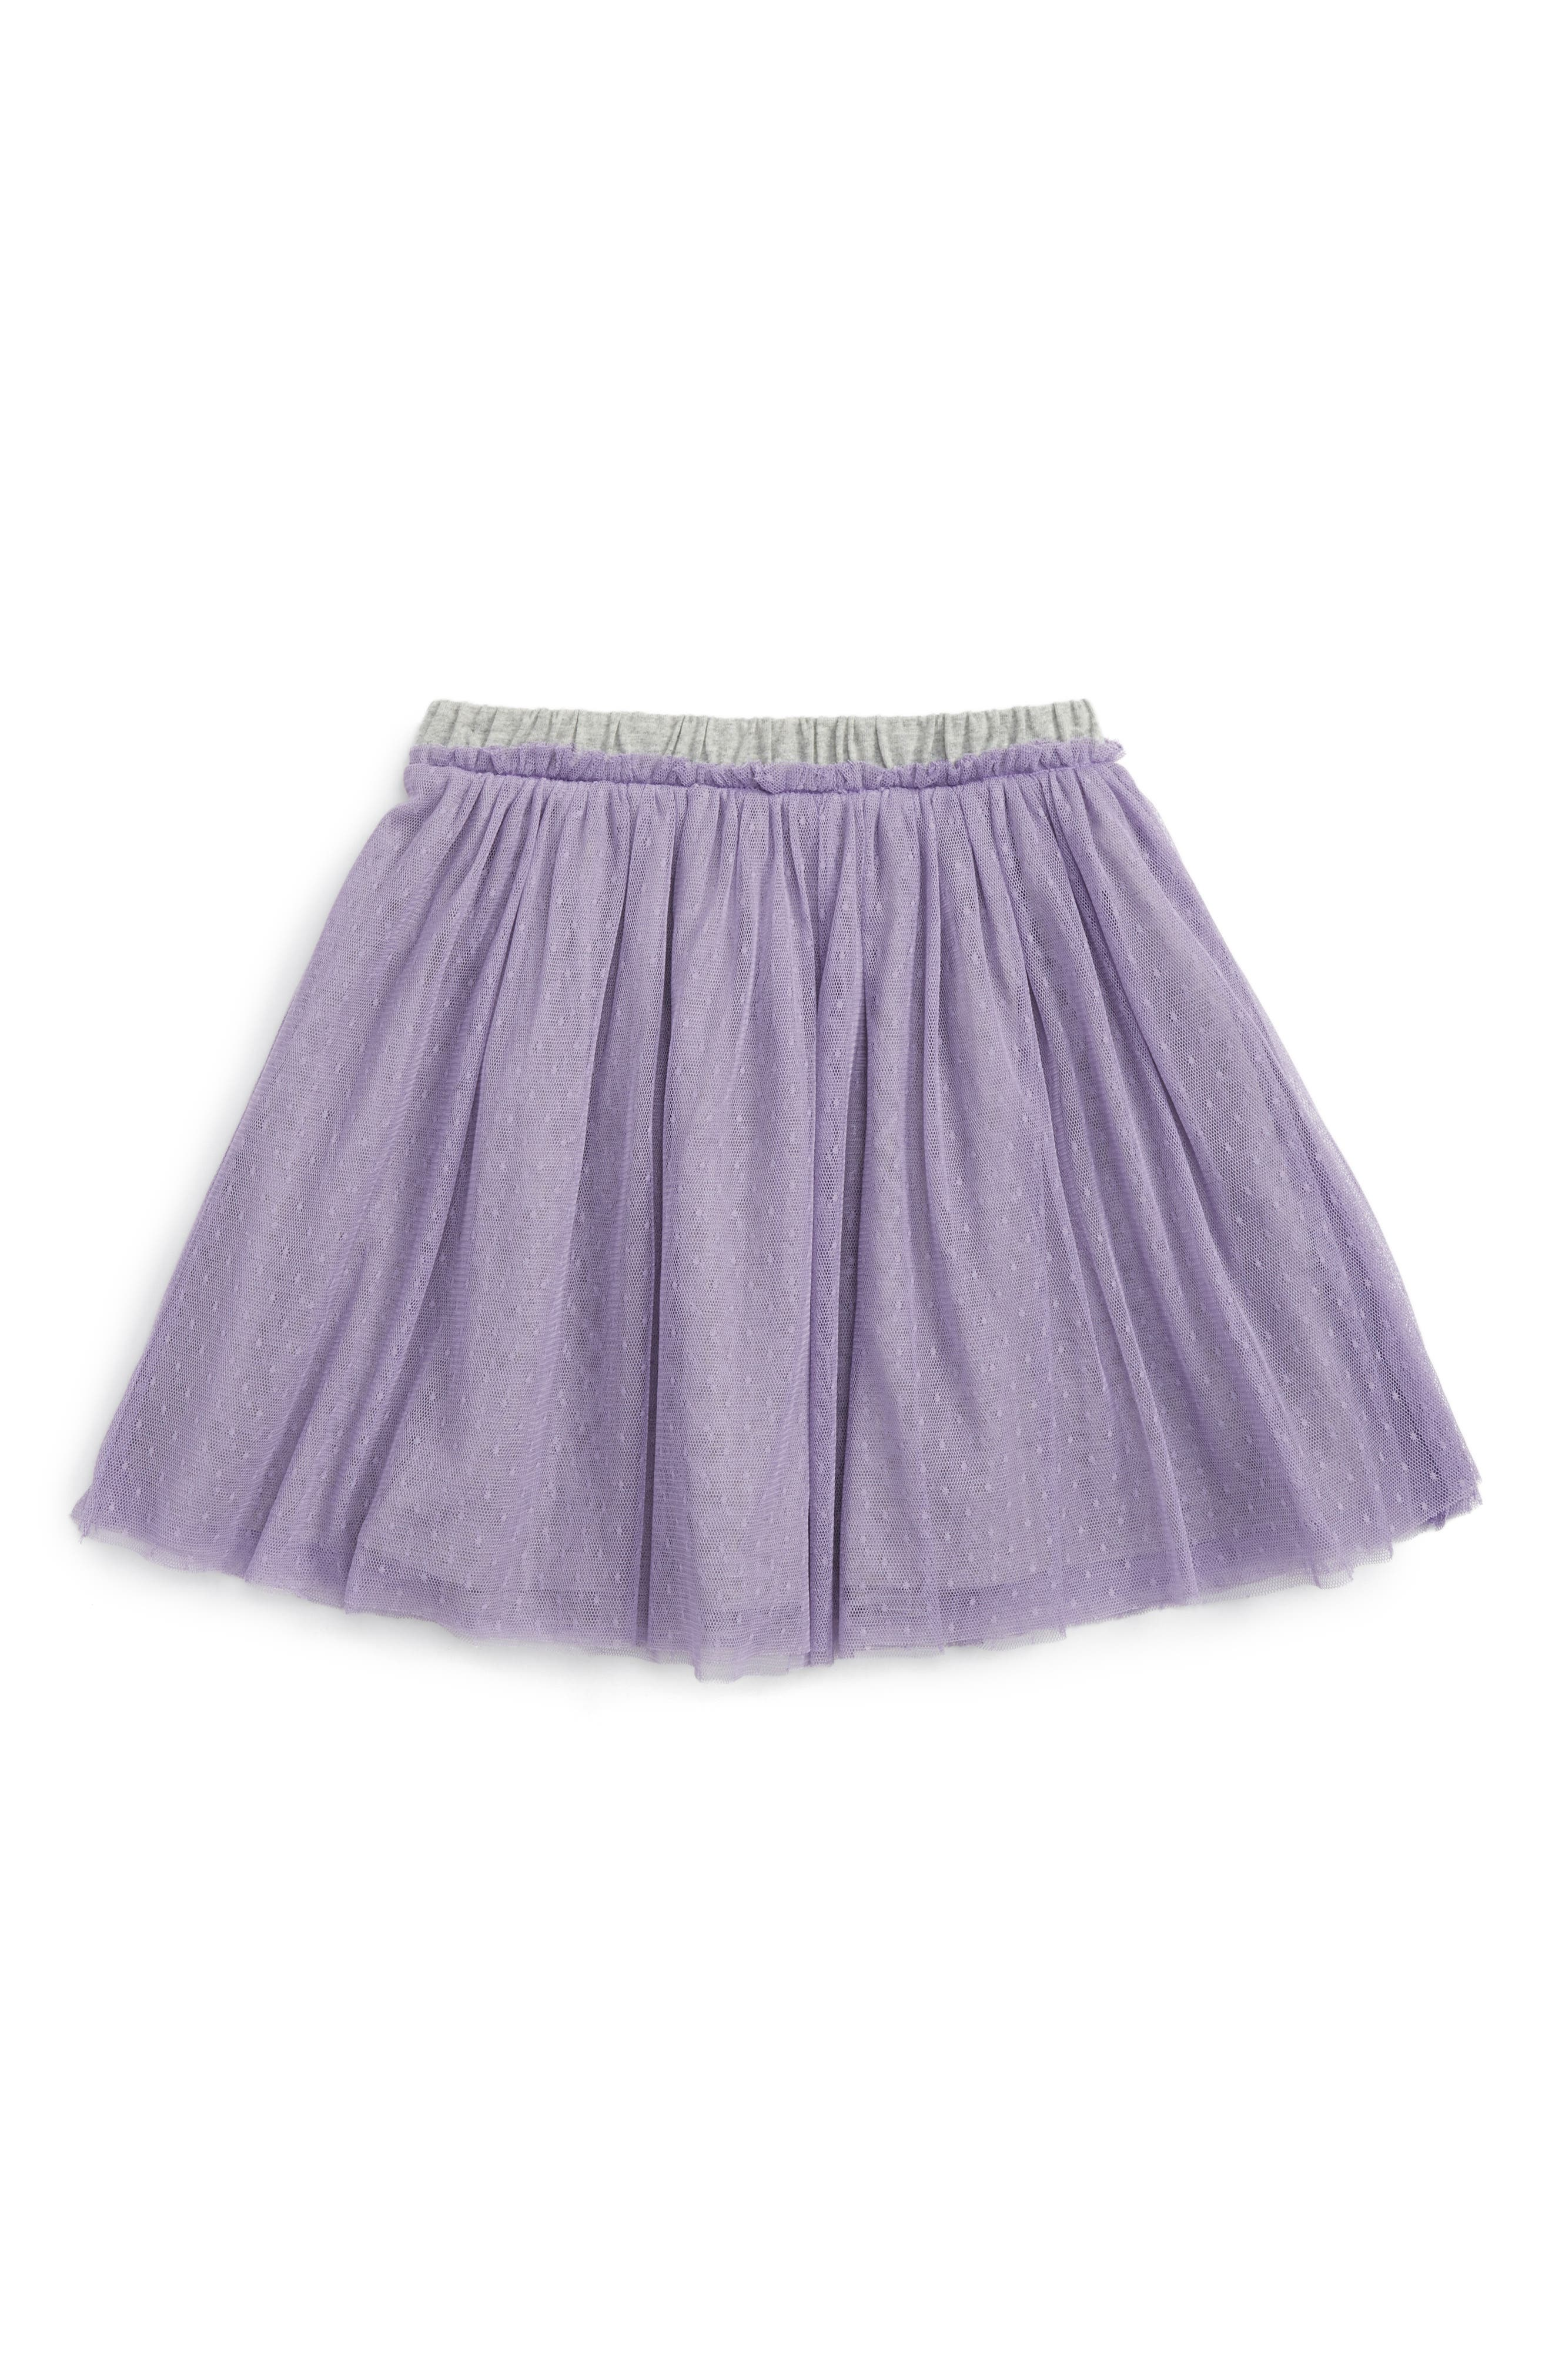 Tulle Skirt,                             Main thumbnail 1, color,                             519